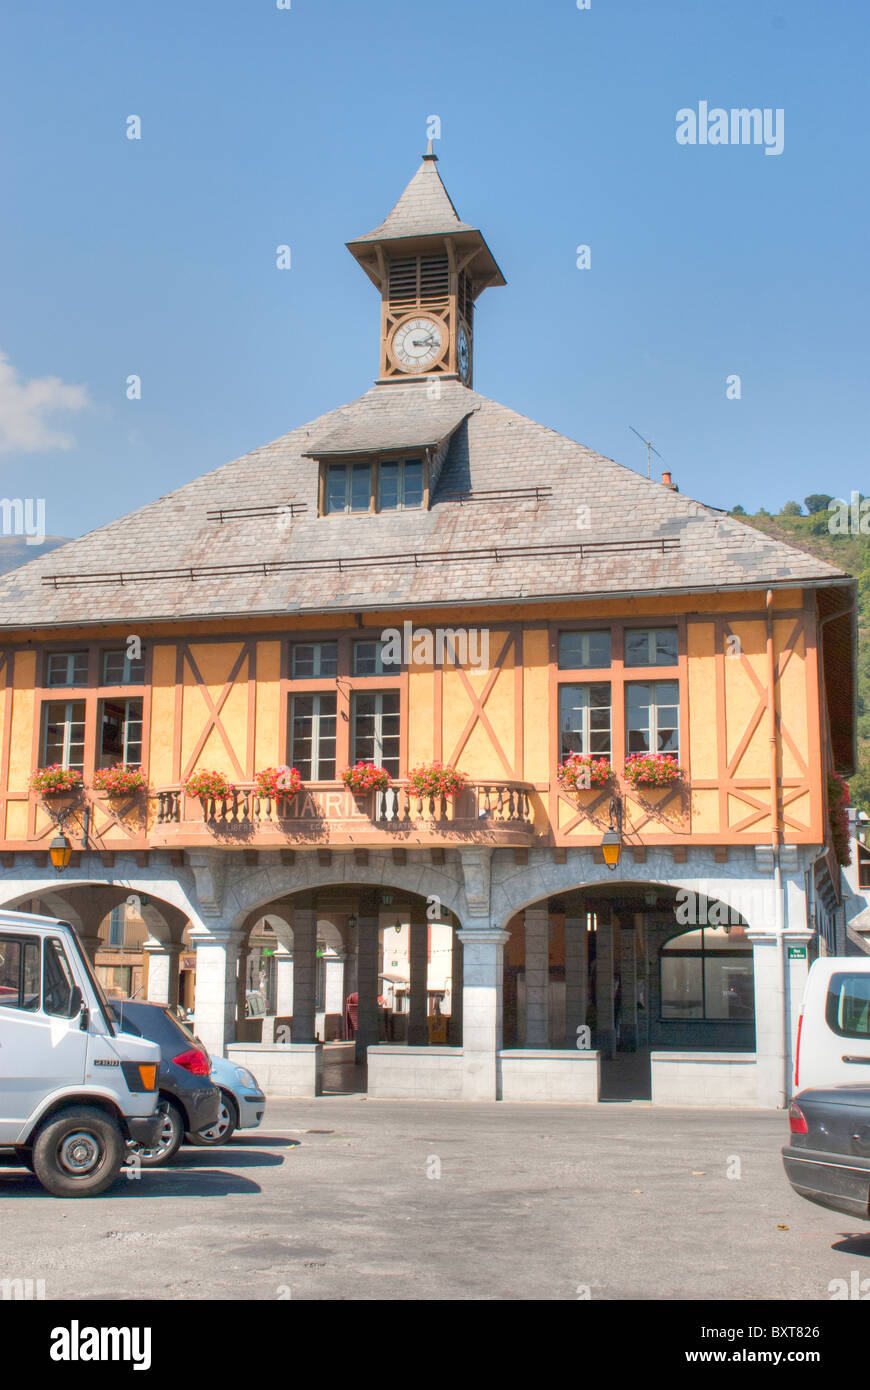 The 17th century Halles in Arreau the Capital of the Quatre Vallees on the route to the Col d'Aspin in the High - Stock Image